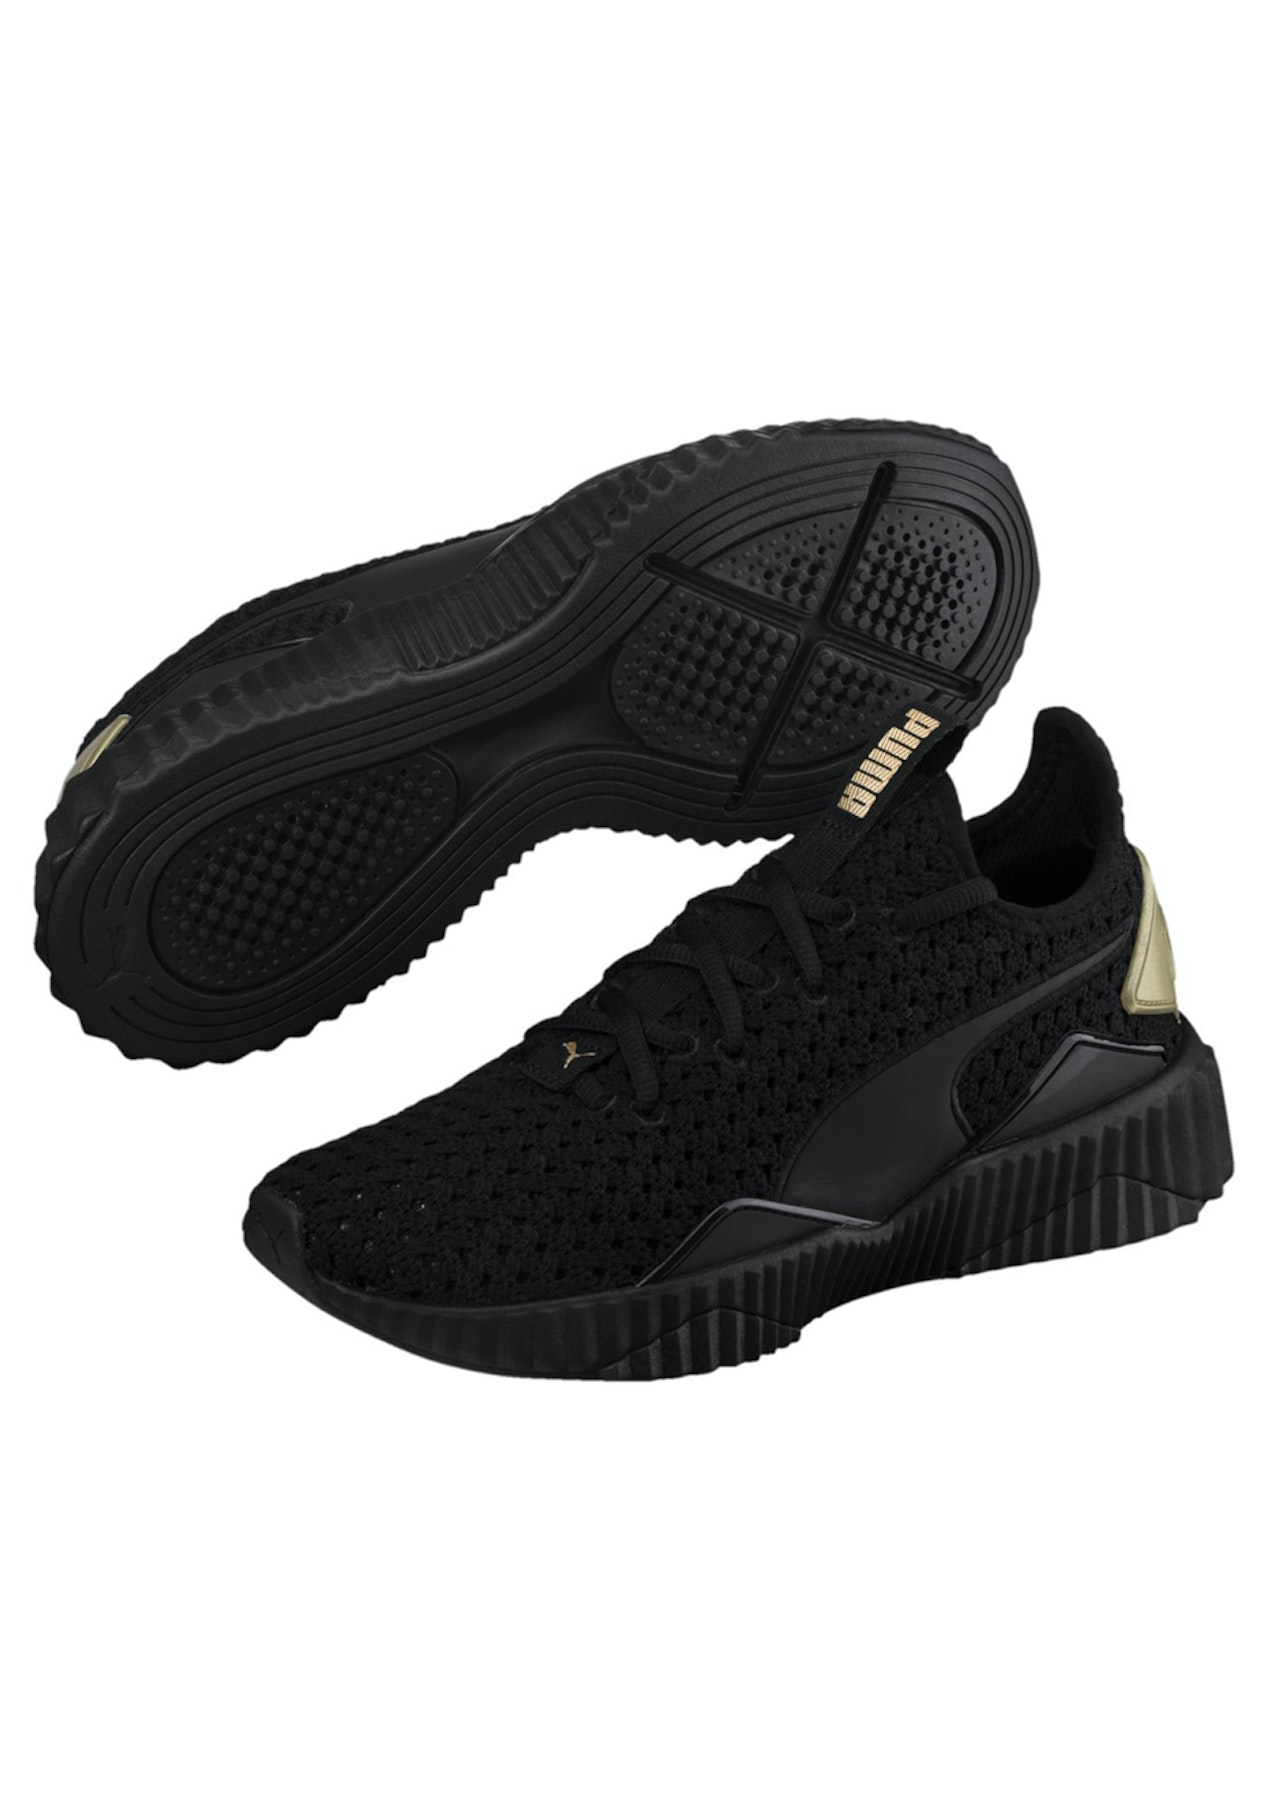 8f6e54d46d68 Puma - Womens Defy Varsity - Black Gold - Puma New Styles Added - Onceit